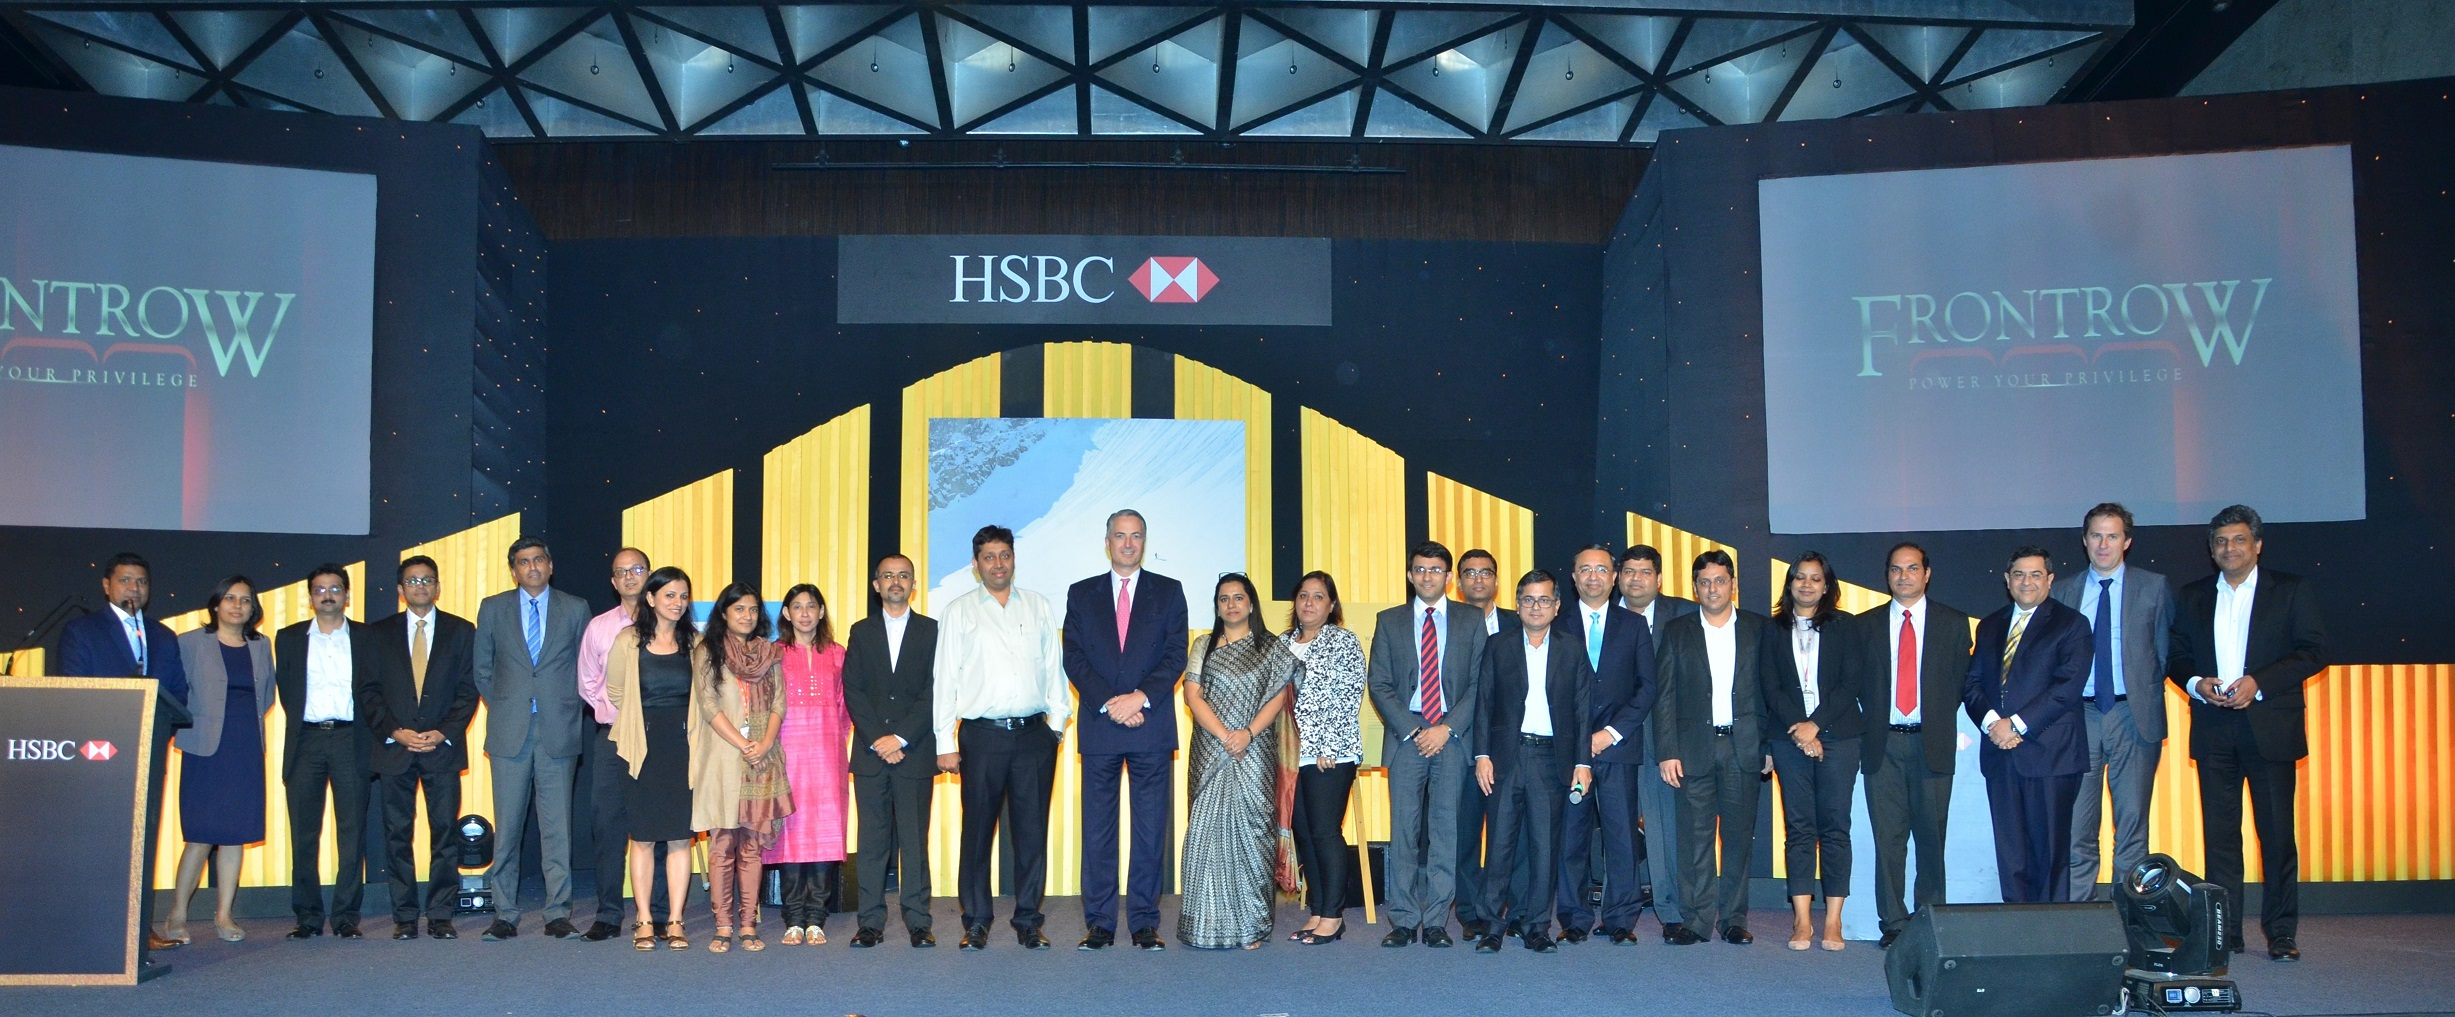 HSBC Unveils E-brochure at its Top Tier Proposition Launch Managed by Encompass